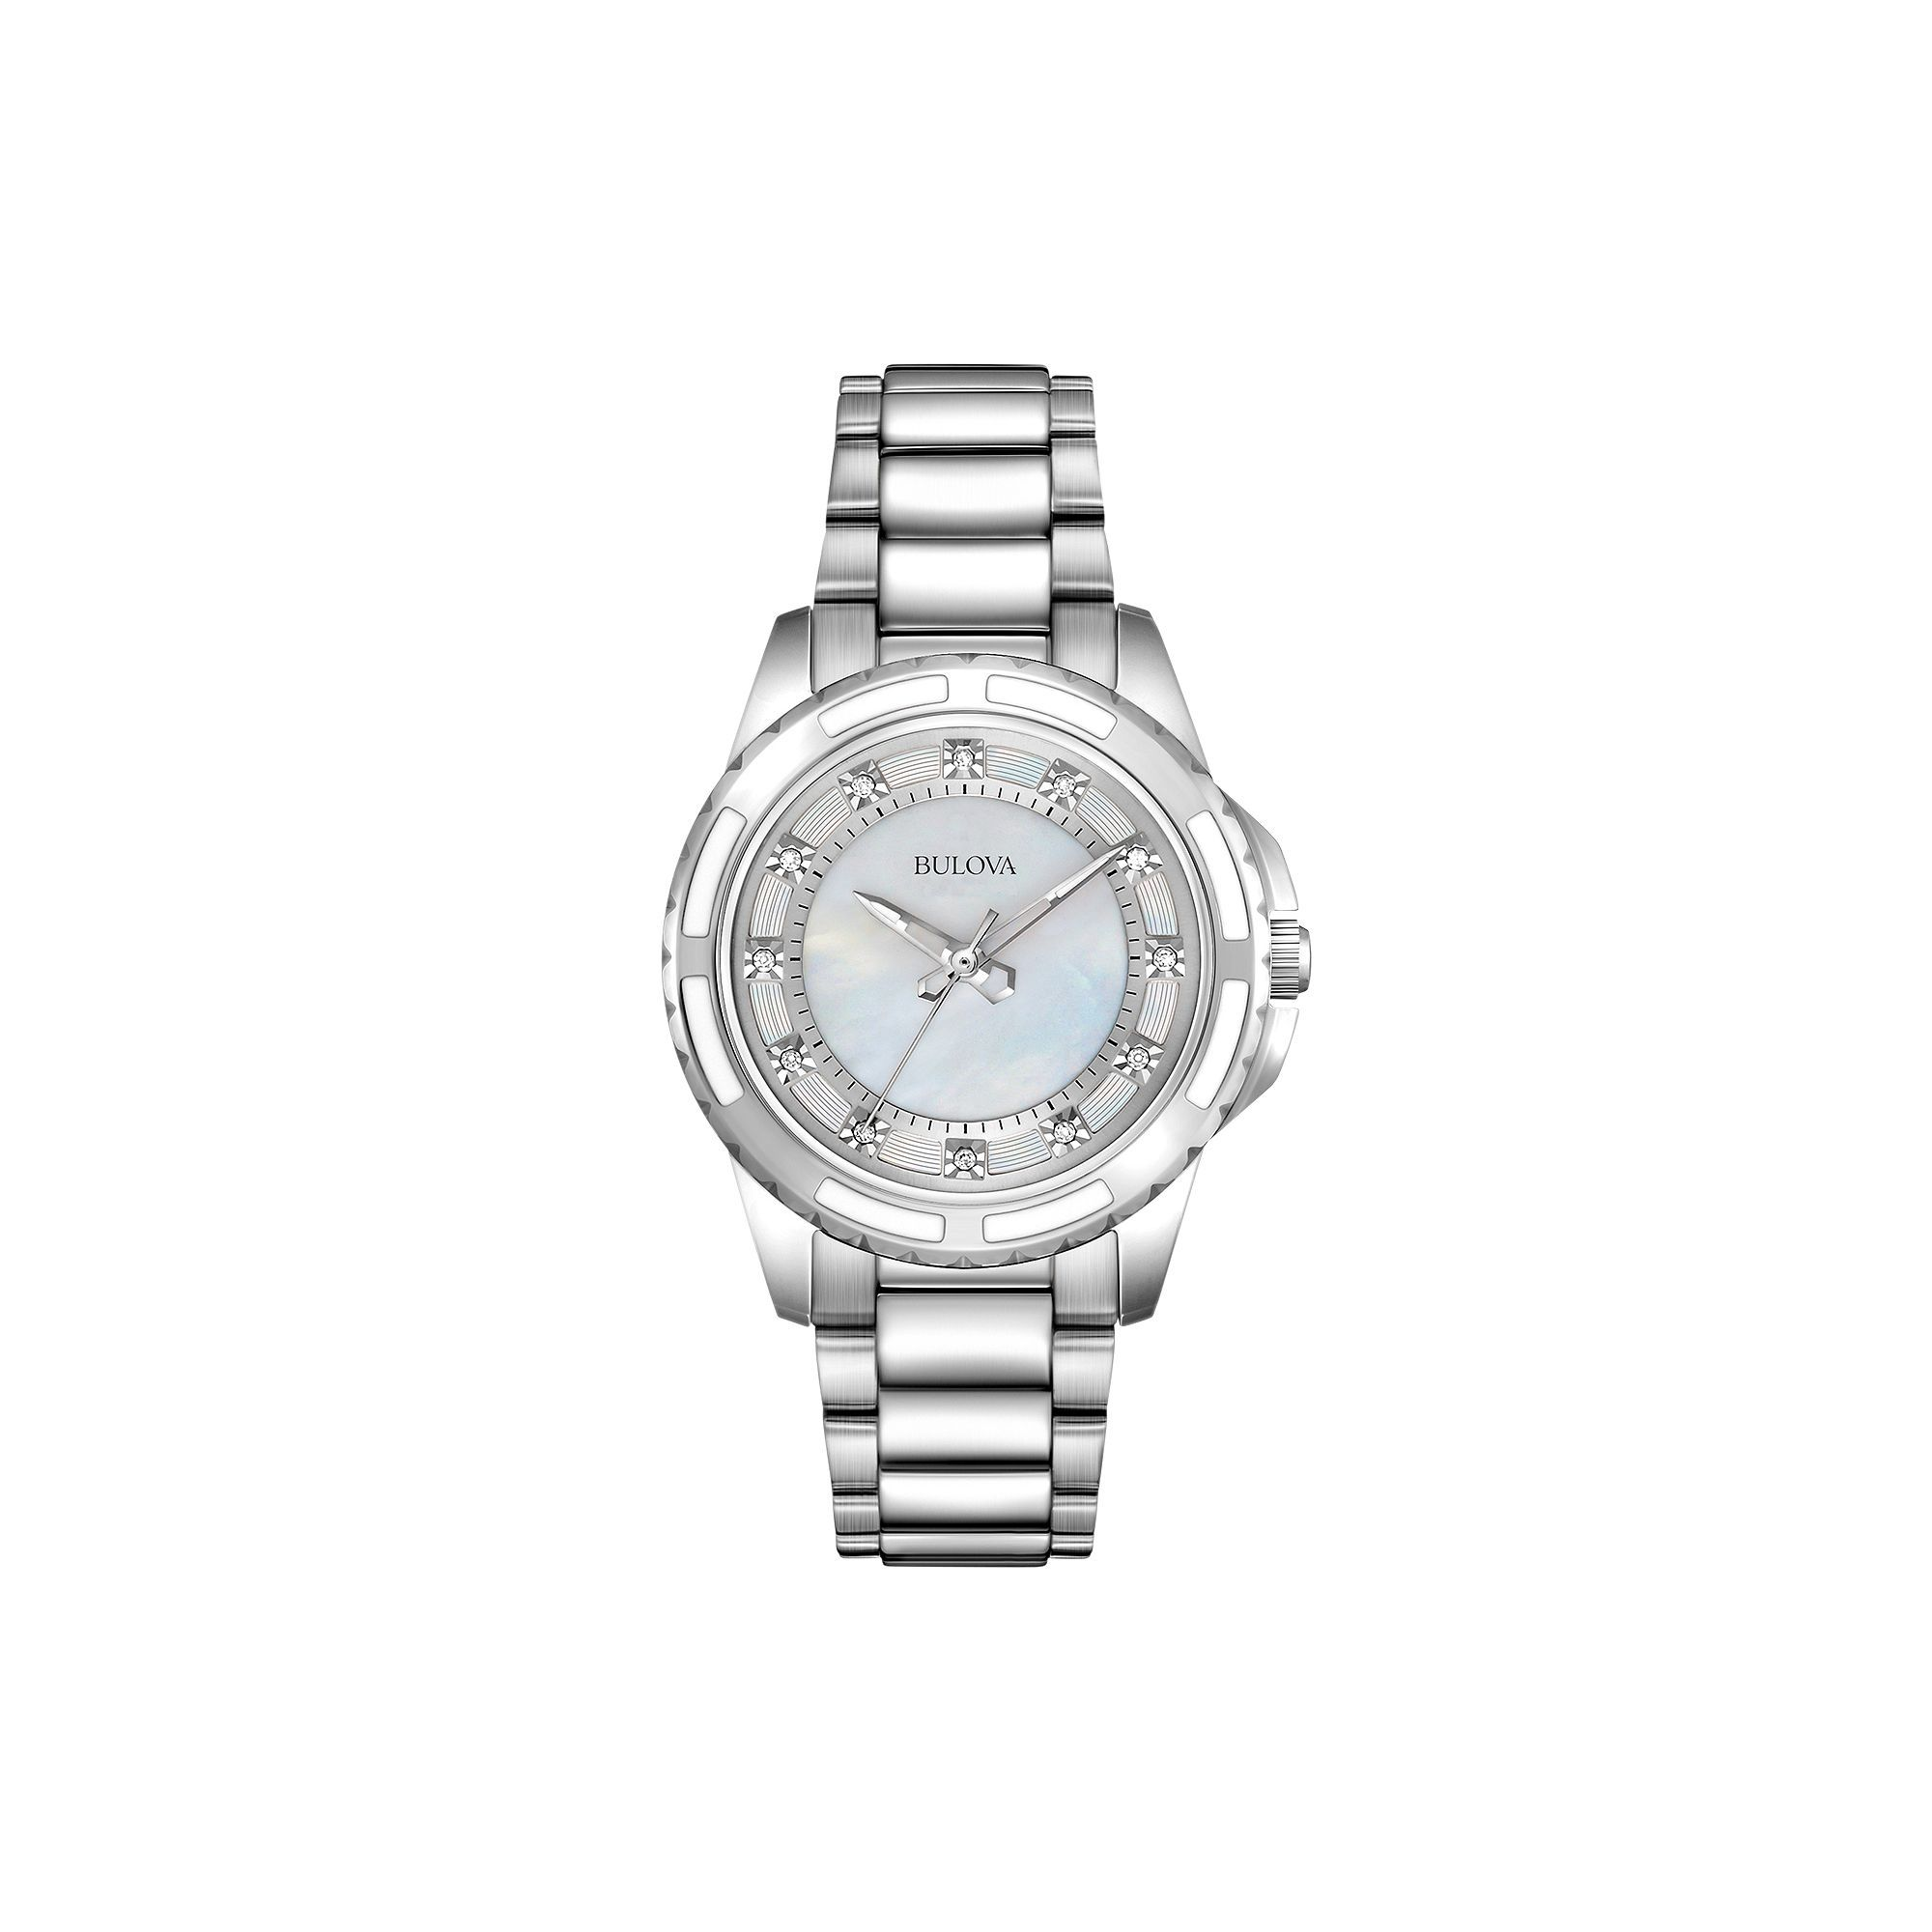 f1dbc64869c3 Bulova Women s Diamond Stainless Steel Watch - 96P144